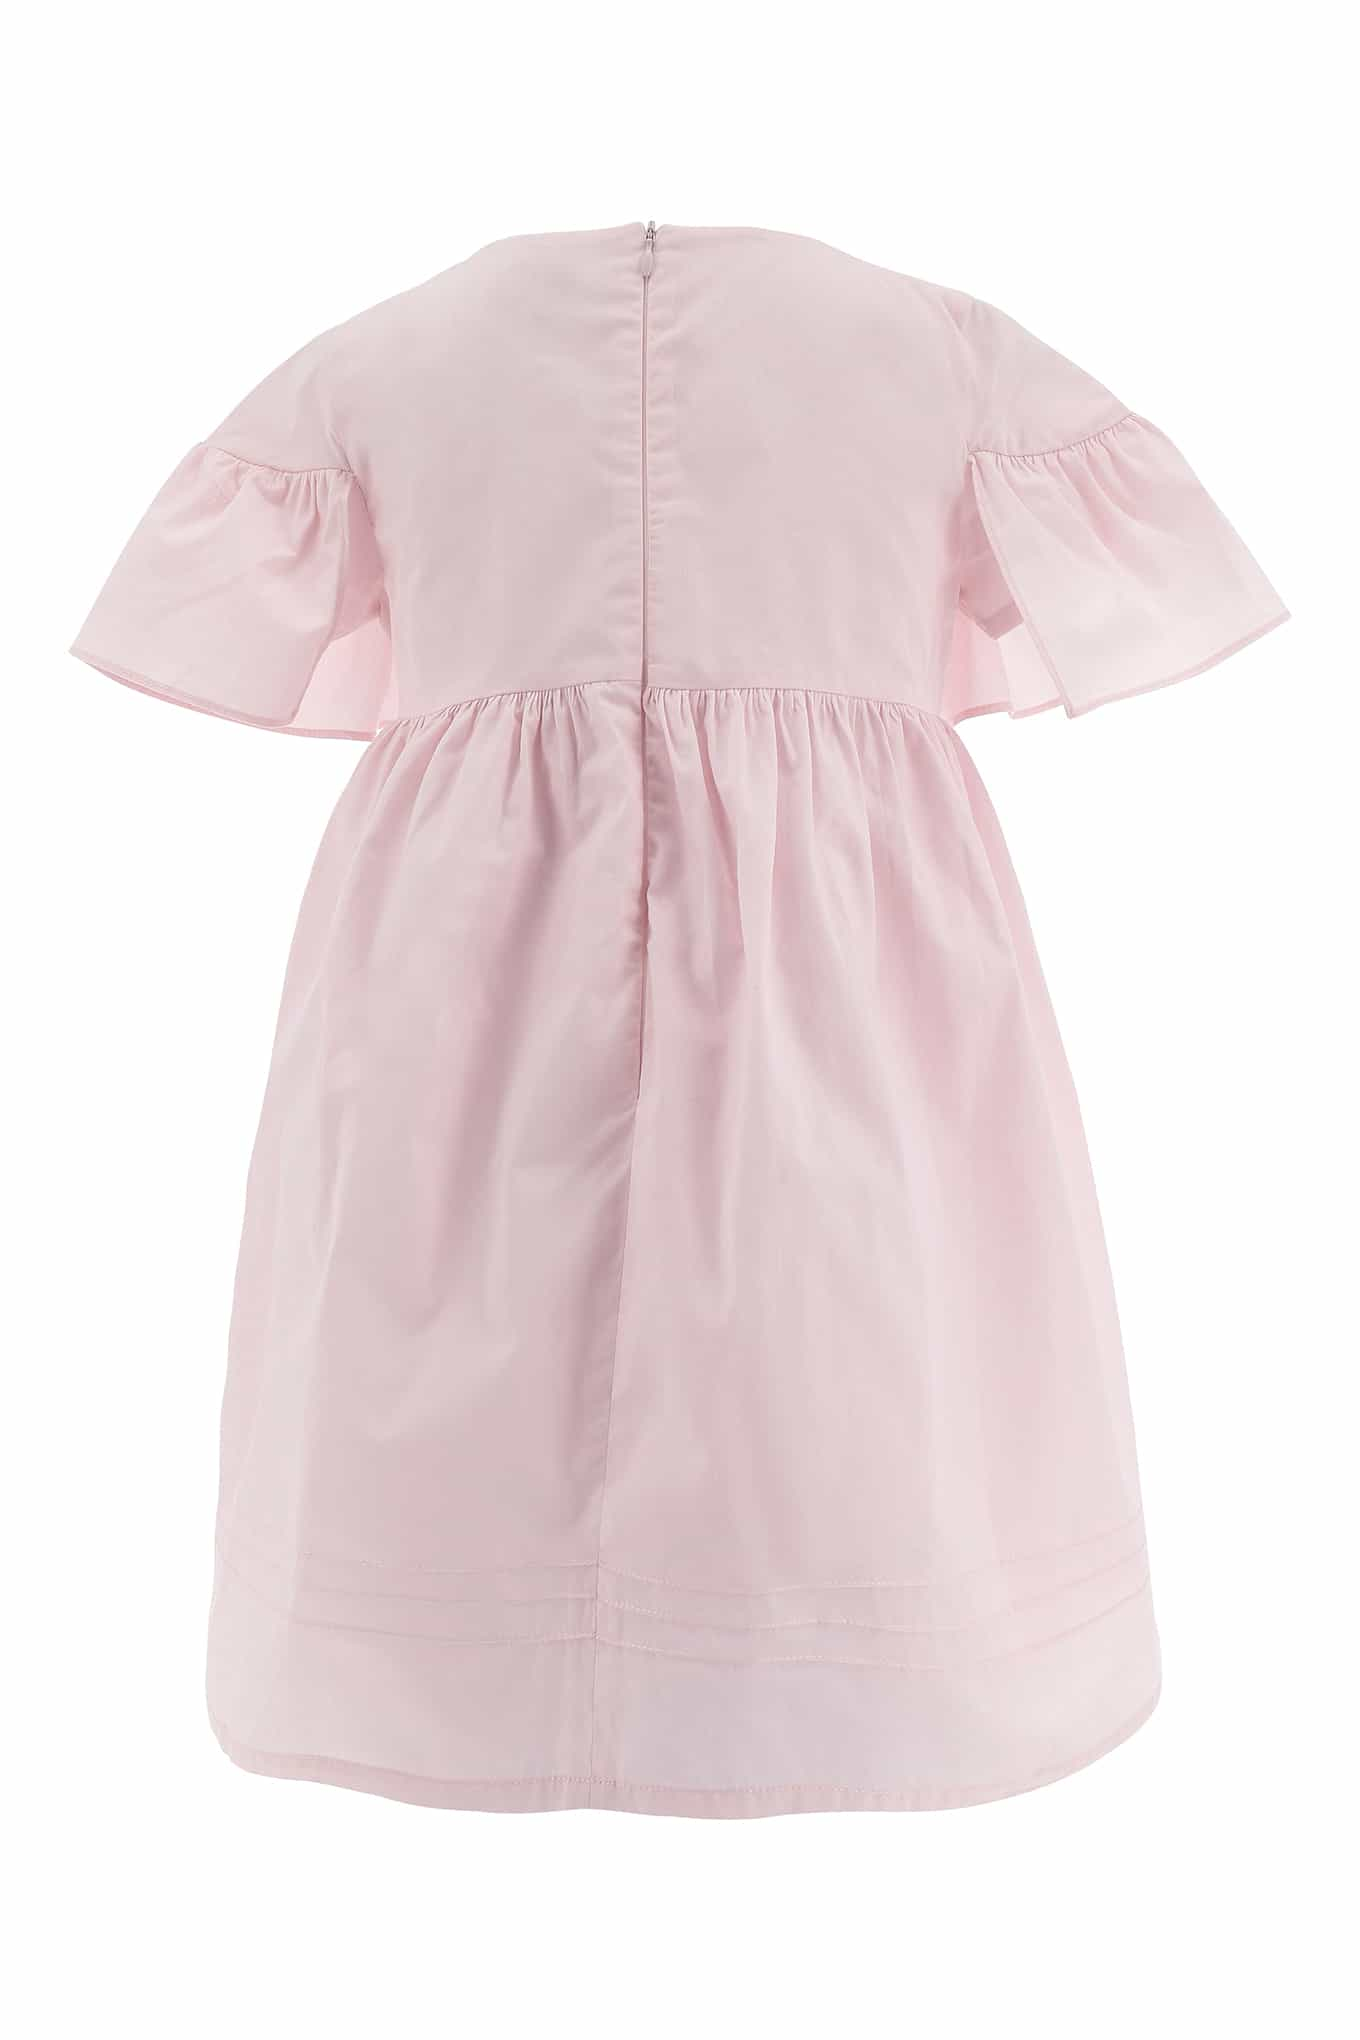 Dress Light Pink Casual Girl